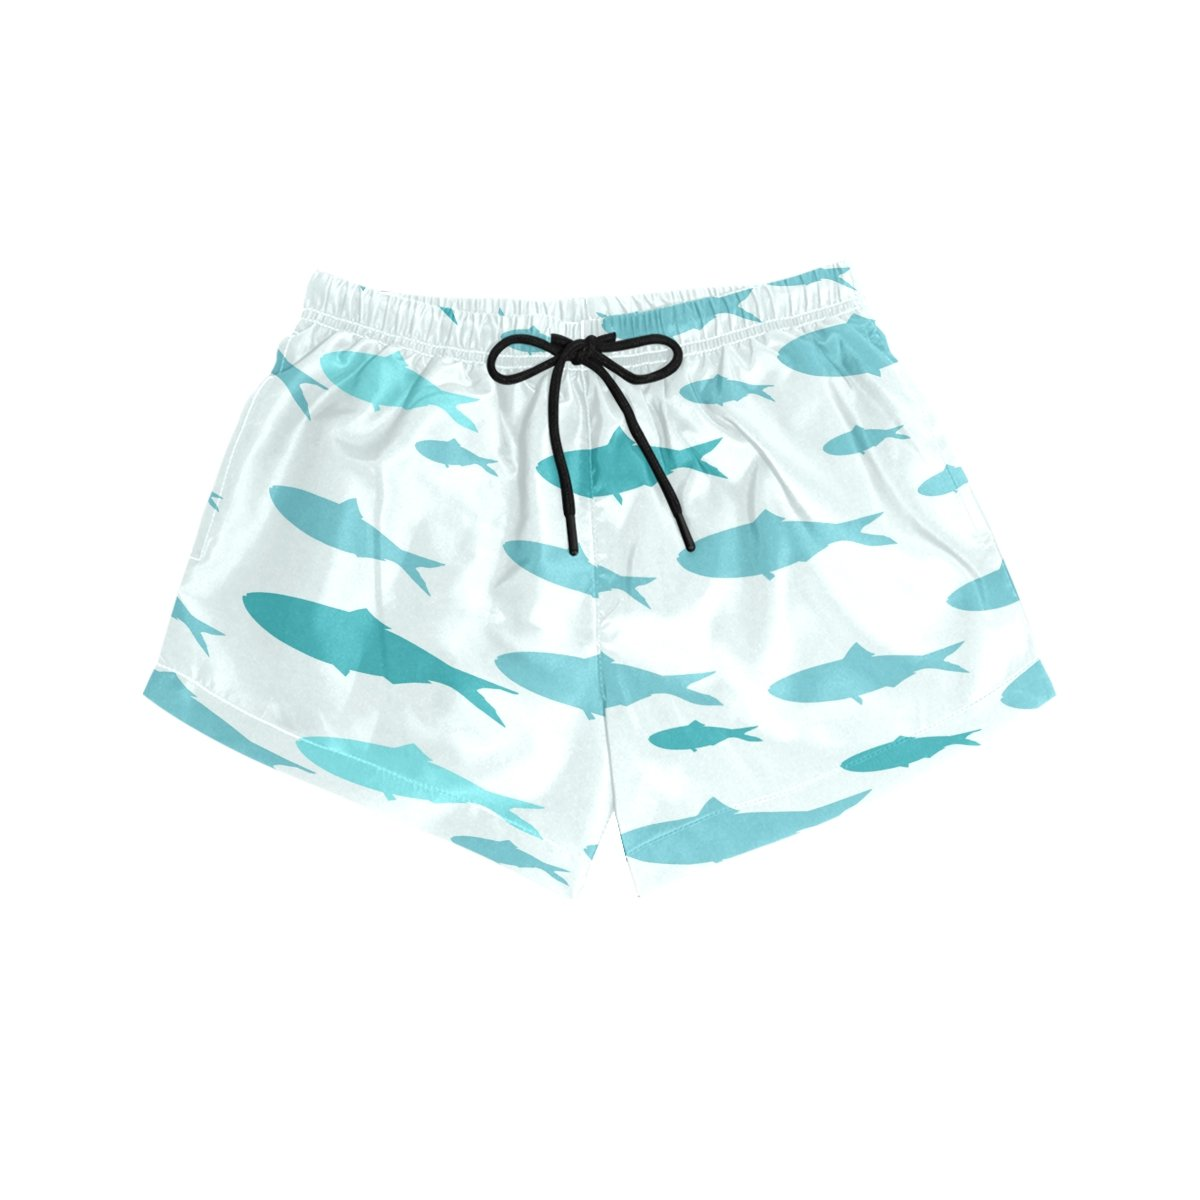 Cooper girl ALAZA Watercolor Blue Whale Womens Shorts Beach Summer Drawstring Casual Shorts